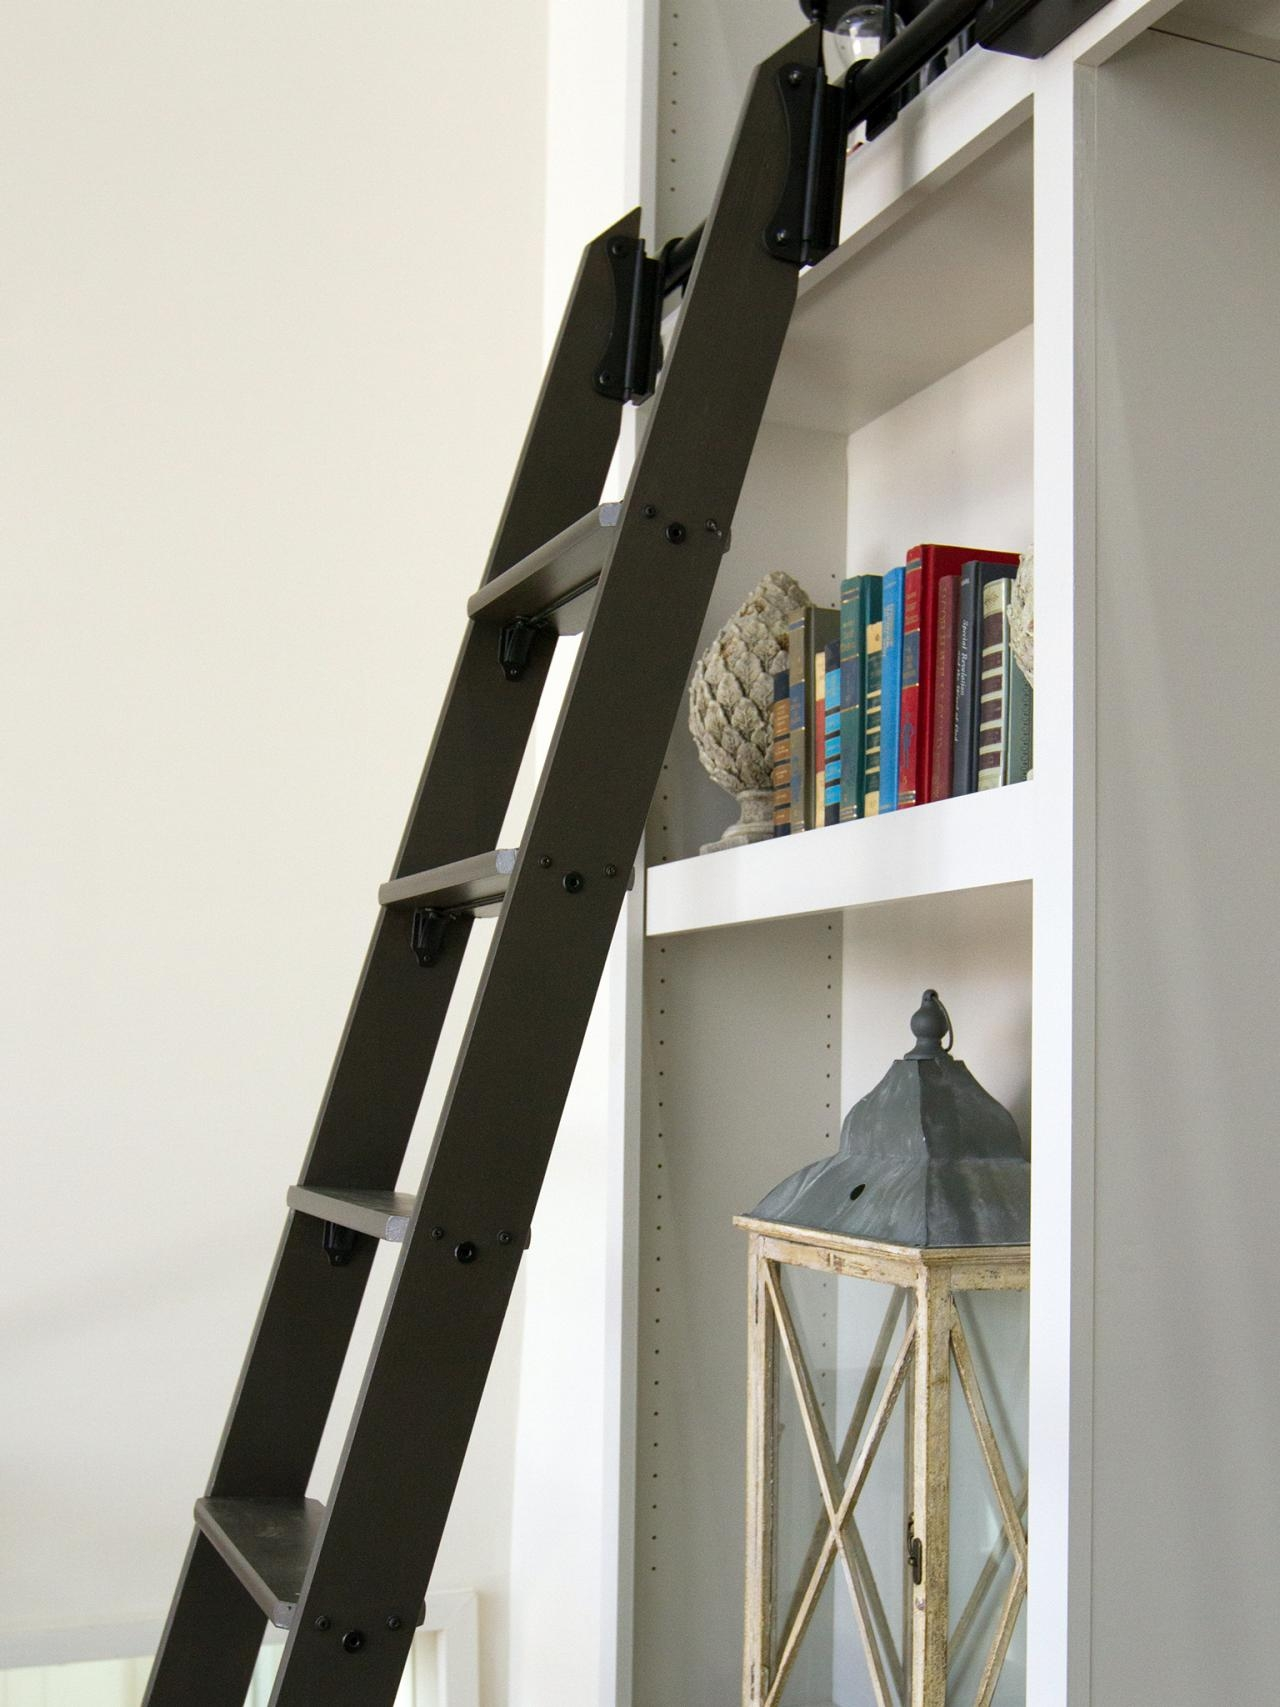 Extraordinary Ladder Closet Roselawnlutheran With Wooden Library Ladders (View 8 of 15)